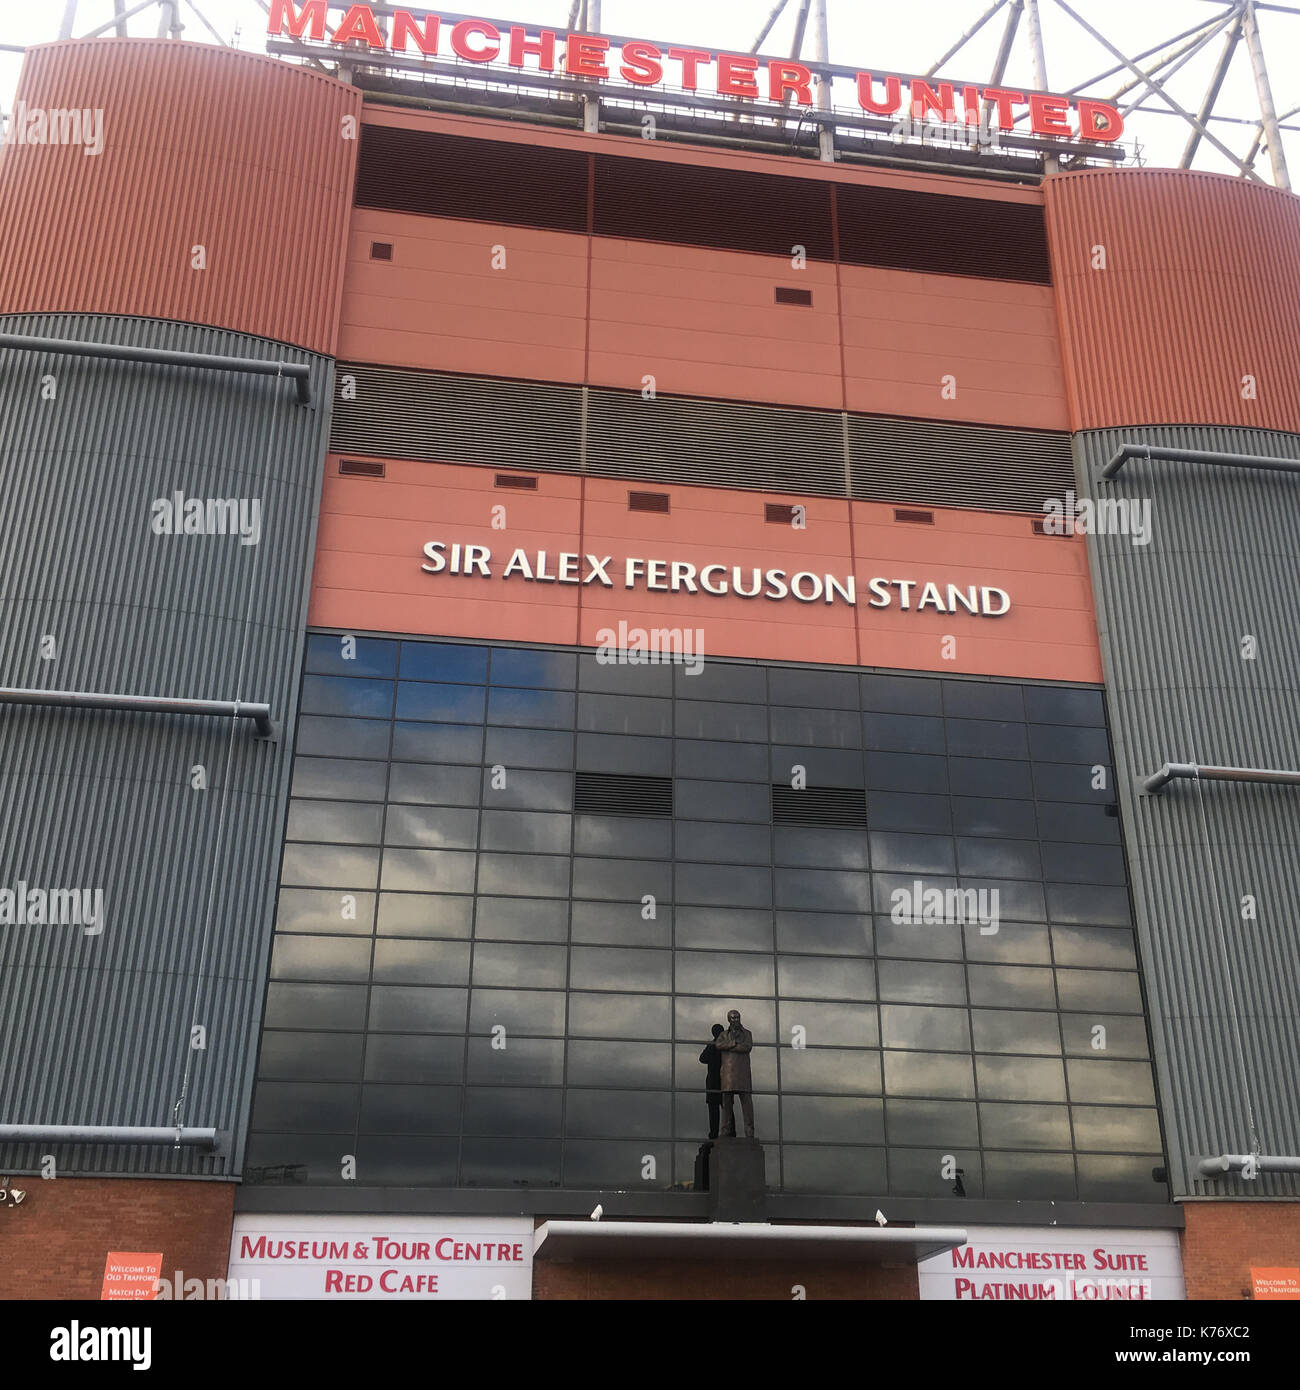 Manchester United Football Club's Old Trafford Stadium, in Manchester, in England, on 14 September 2017. - Stock Image